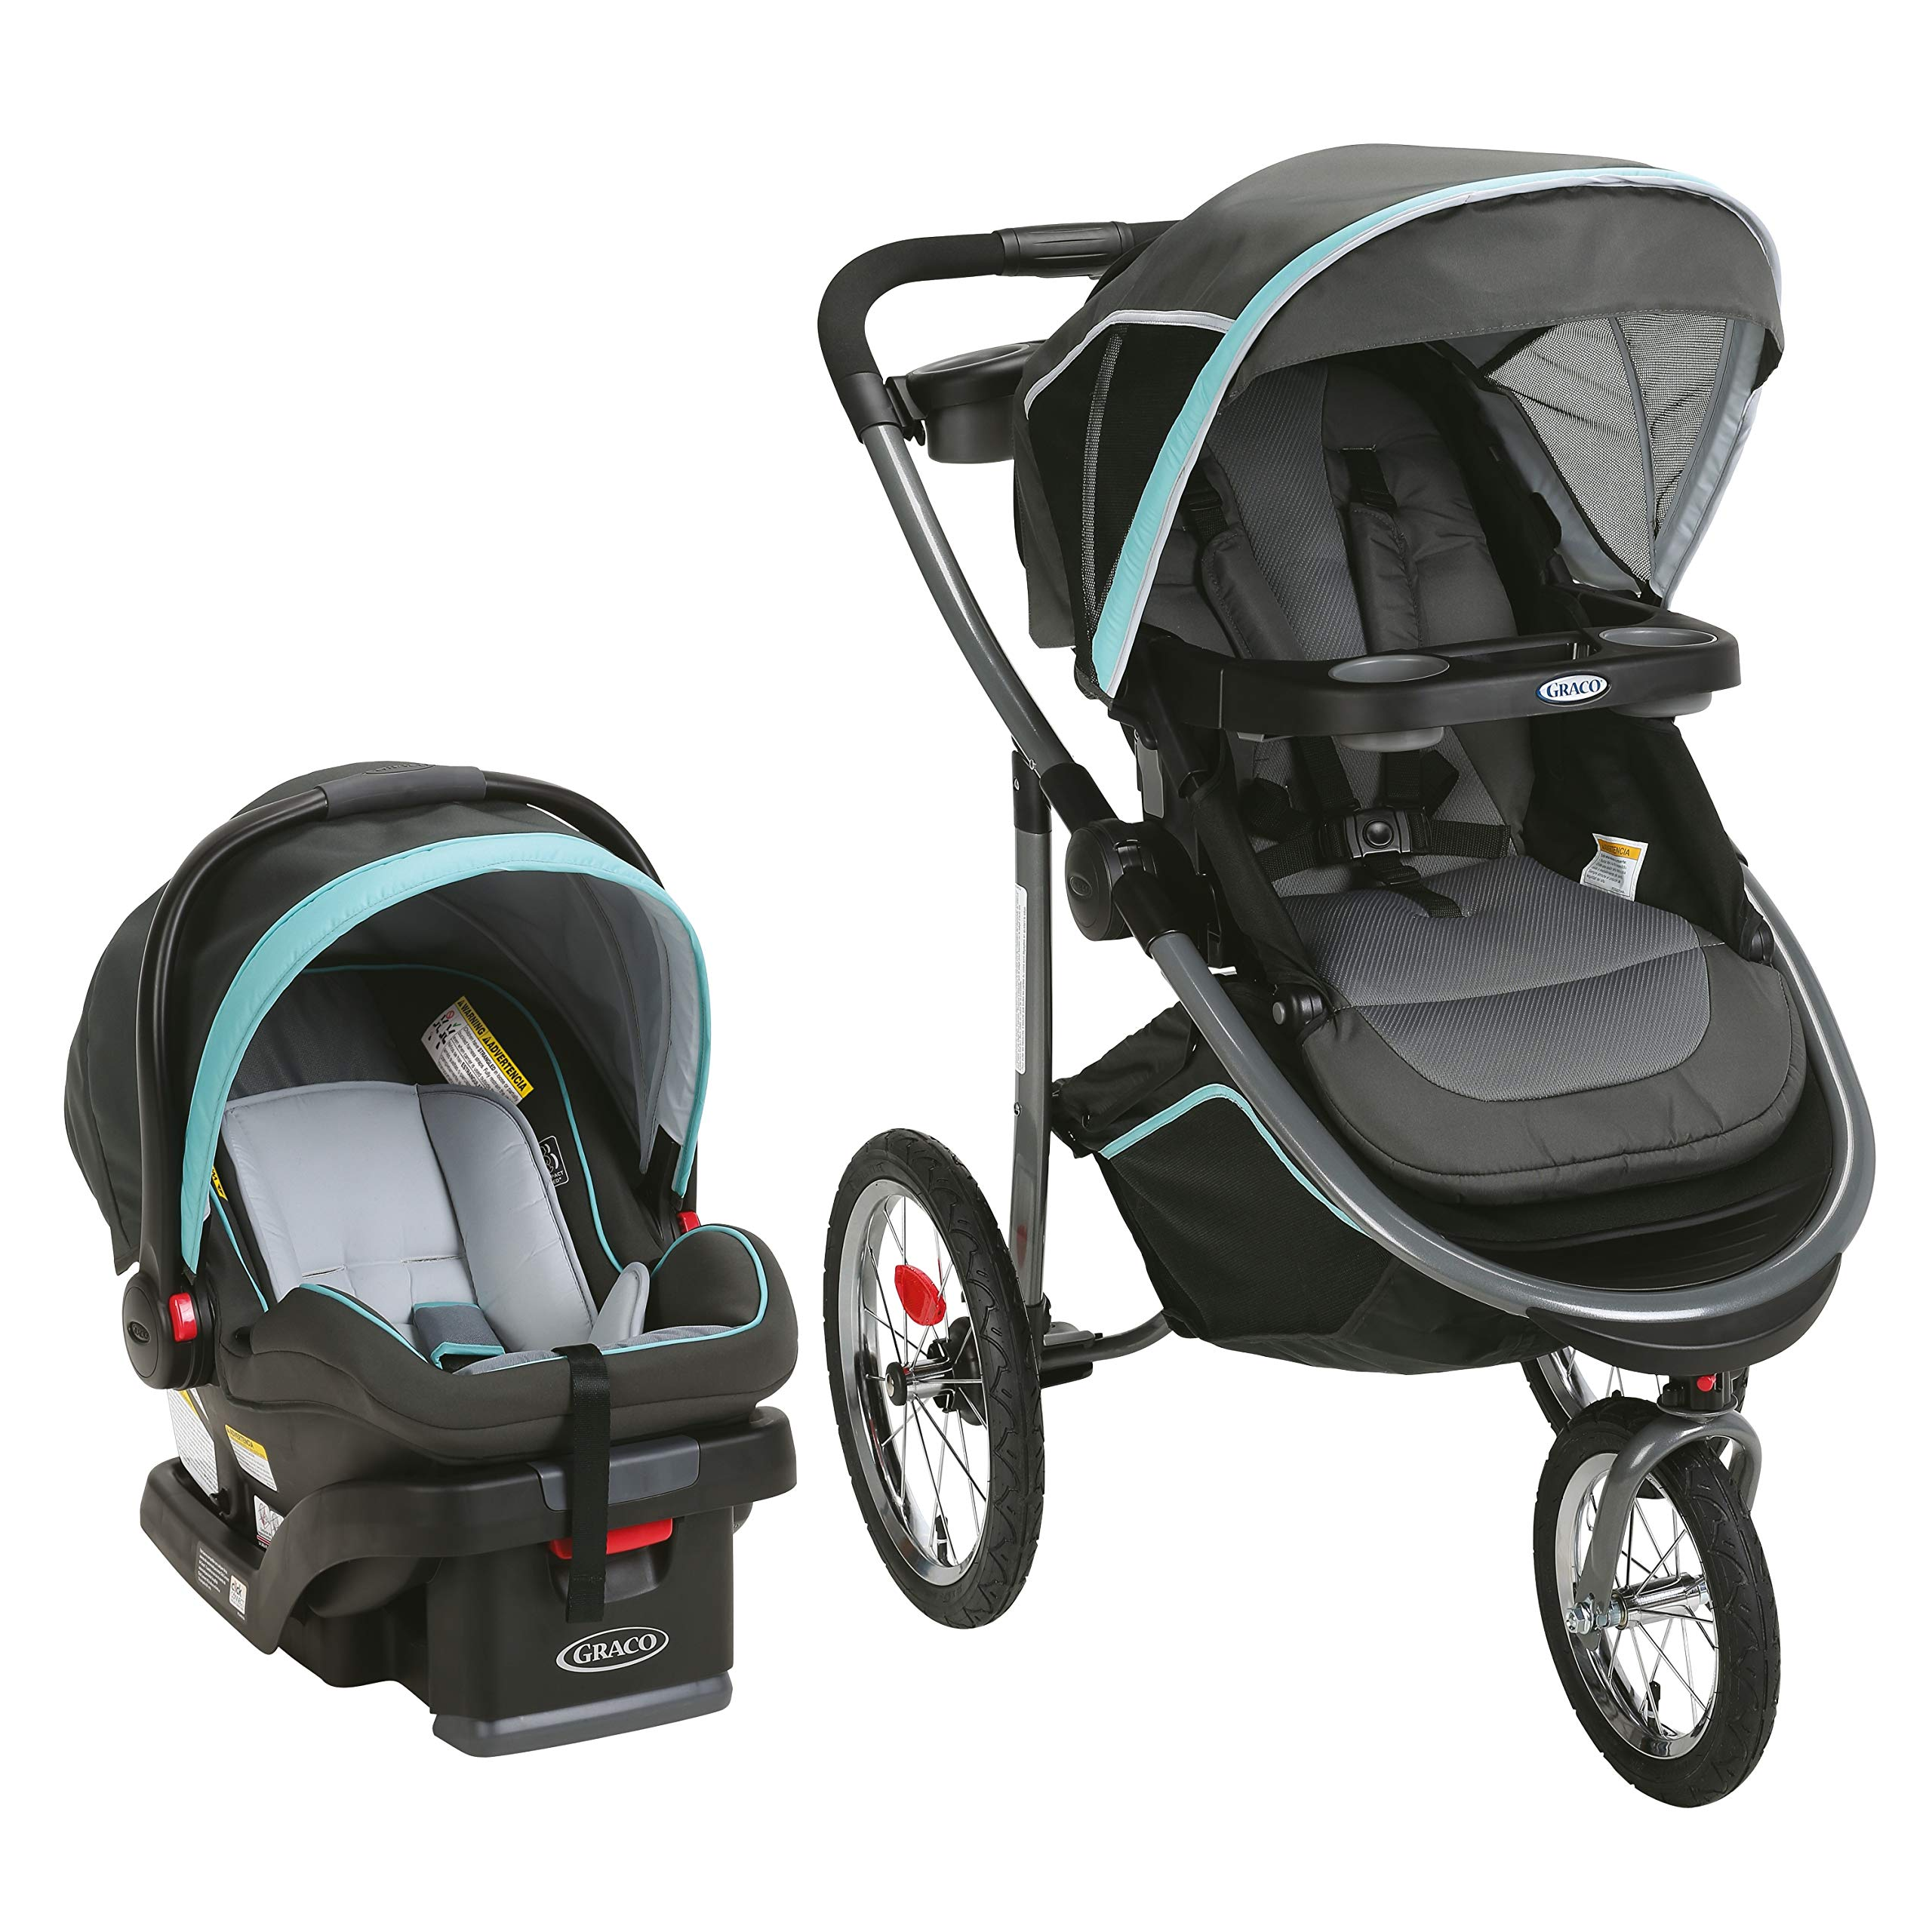 Graco Modes Jogger Travel System Stroller, Tenley by Graco (Image #3)